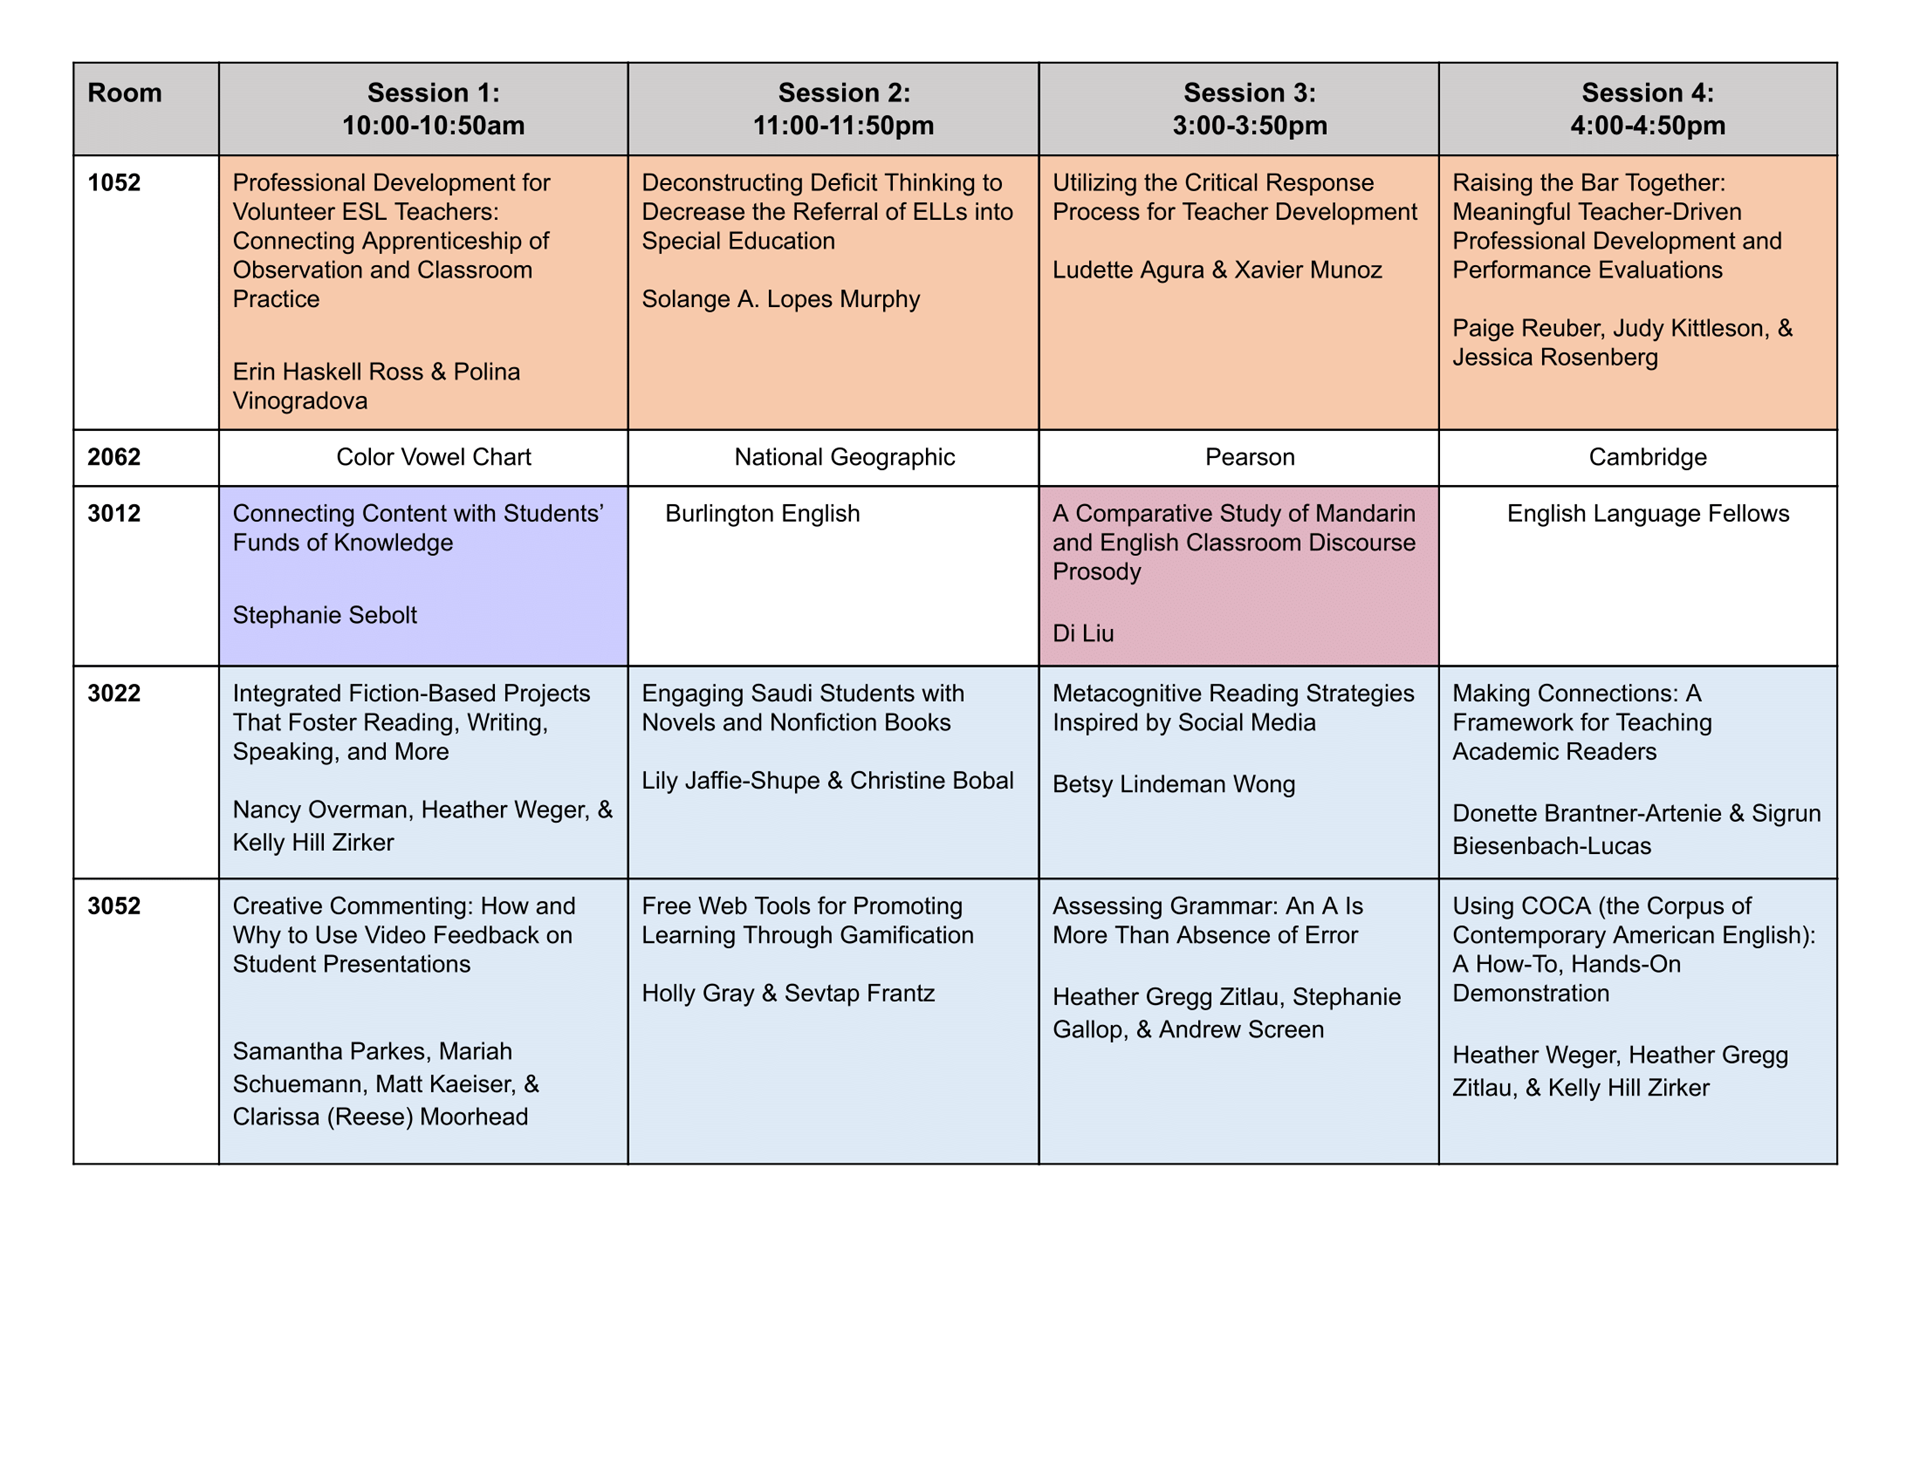 Washington dc area tesol watesol sessions and schedule download a printable pdf of the schedule nvjuhfo Choice Image